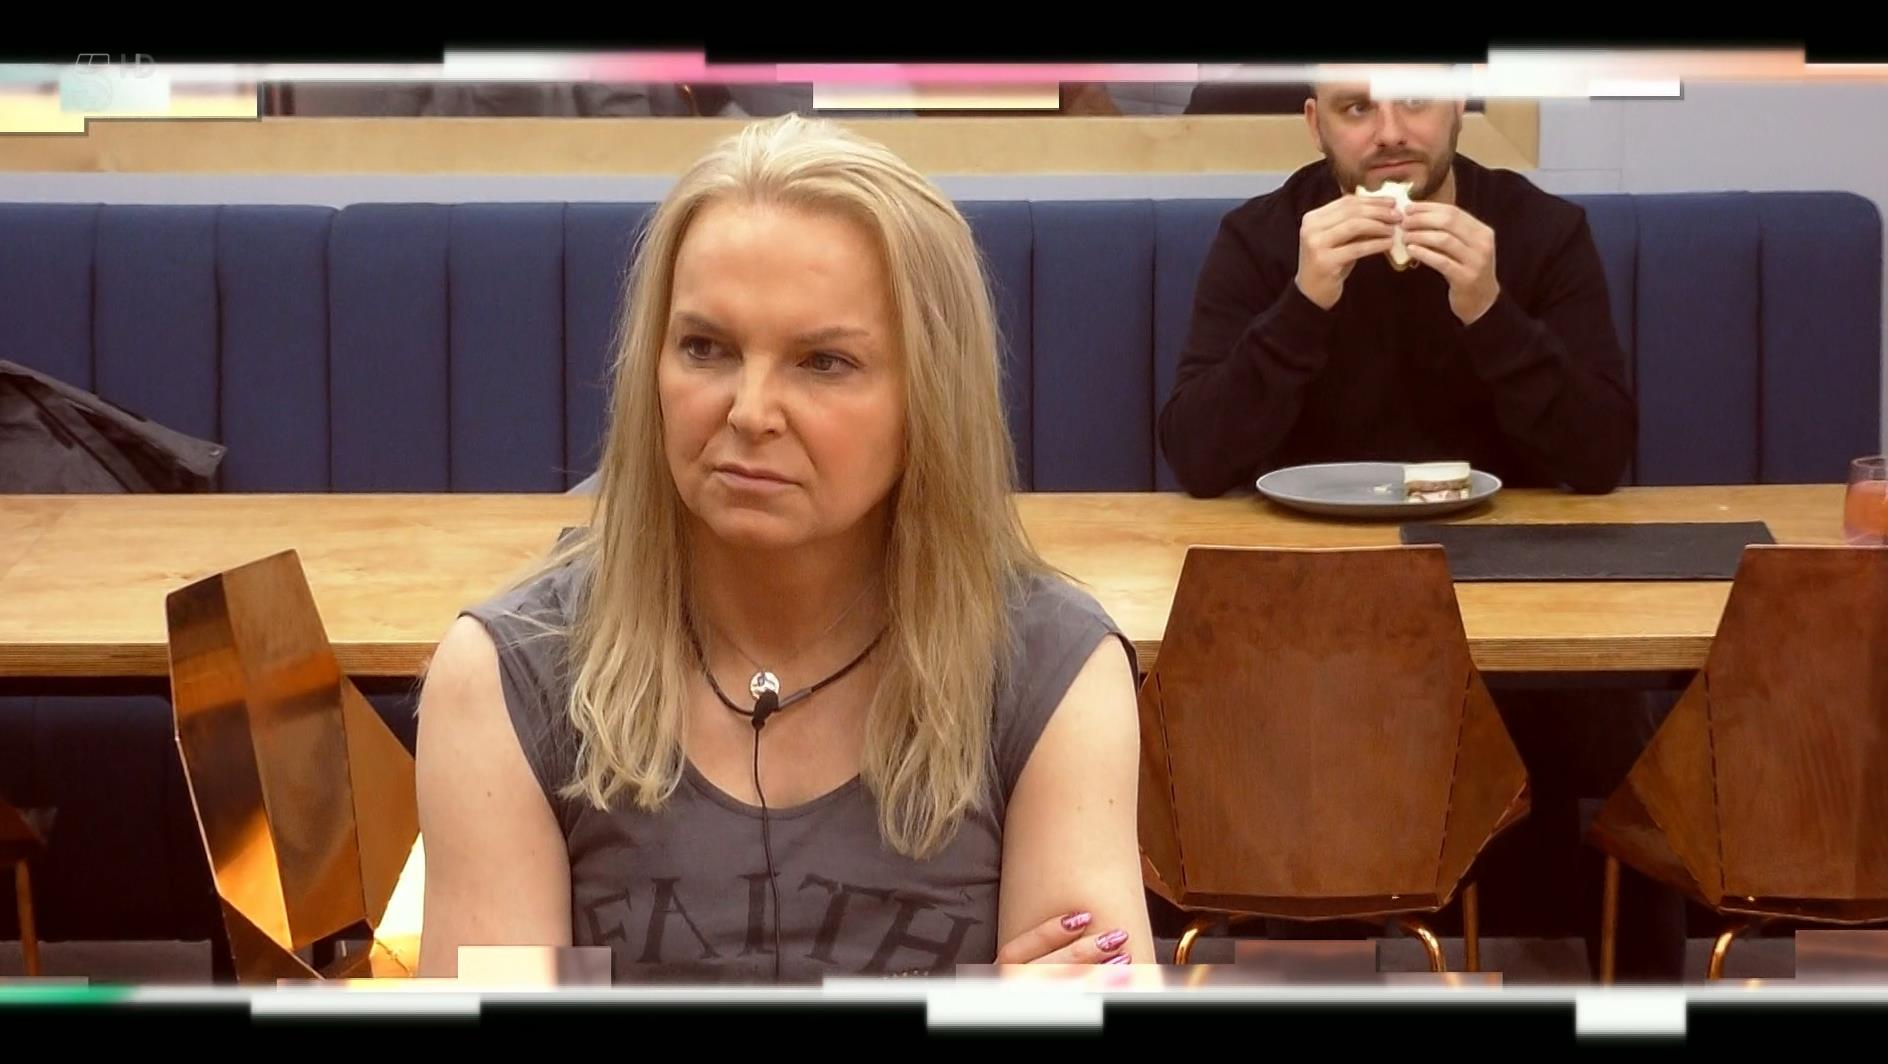 Channel 5 - Celebrity Big Brother - India Willoughby (16)